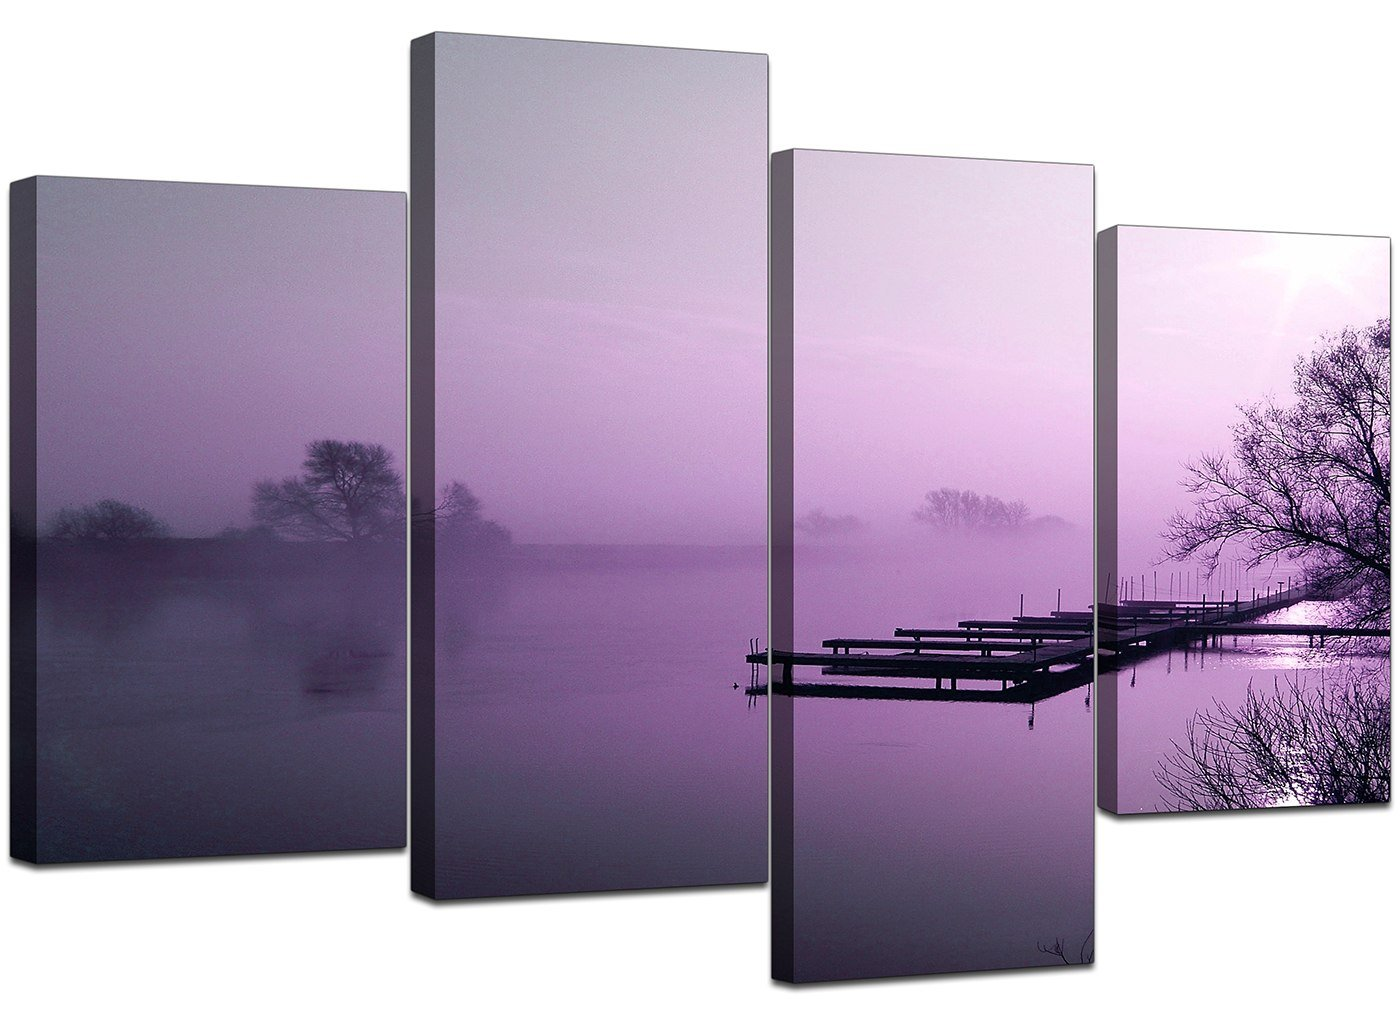 Large Purple Landscape Bedroom Canvas Wall Art Pictures 130cm Set 4119:  Amazon.co.uk: Kitchen U0026 Home